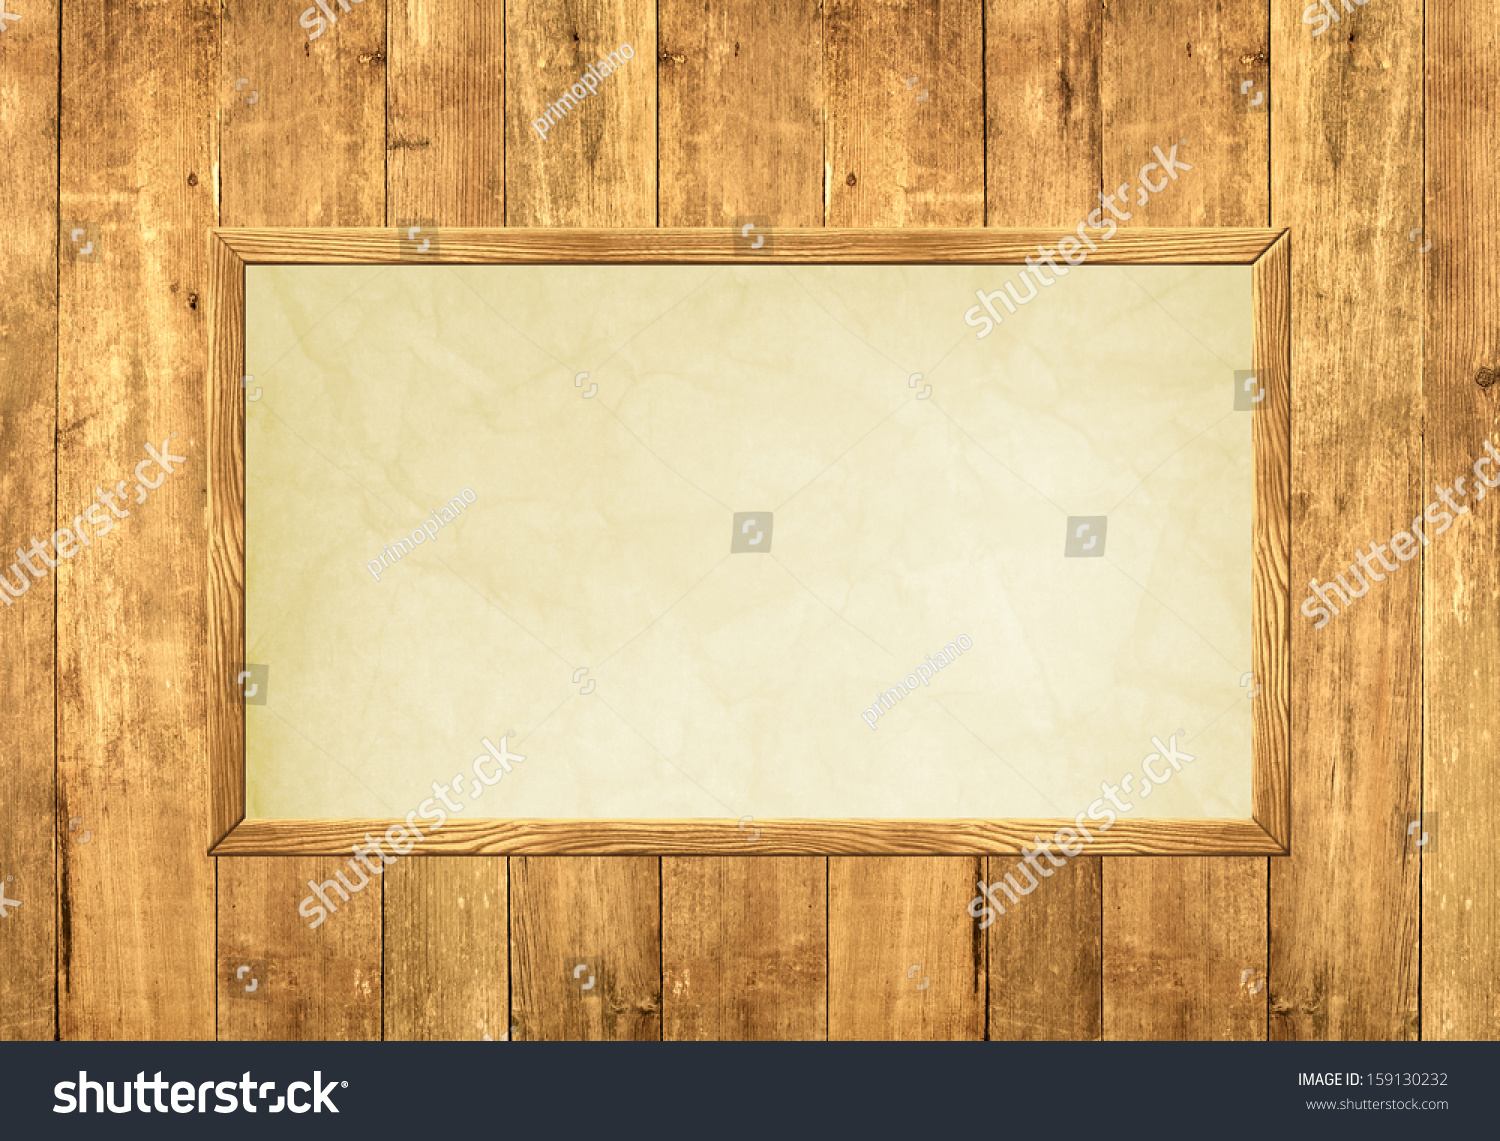 Attractive Box Frame Wall Art Ensign - All About Wallart ...